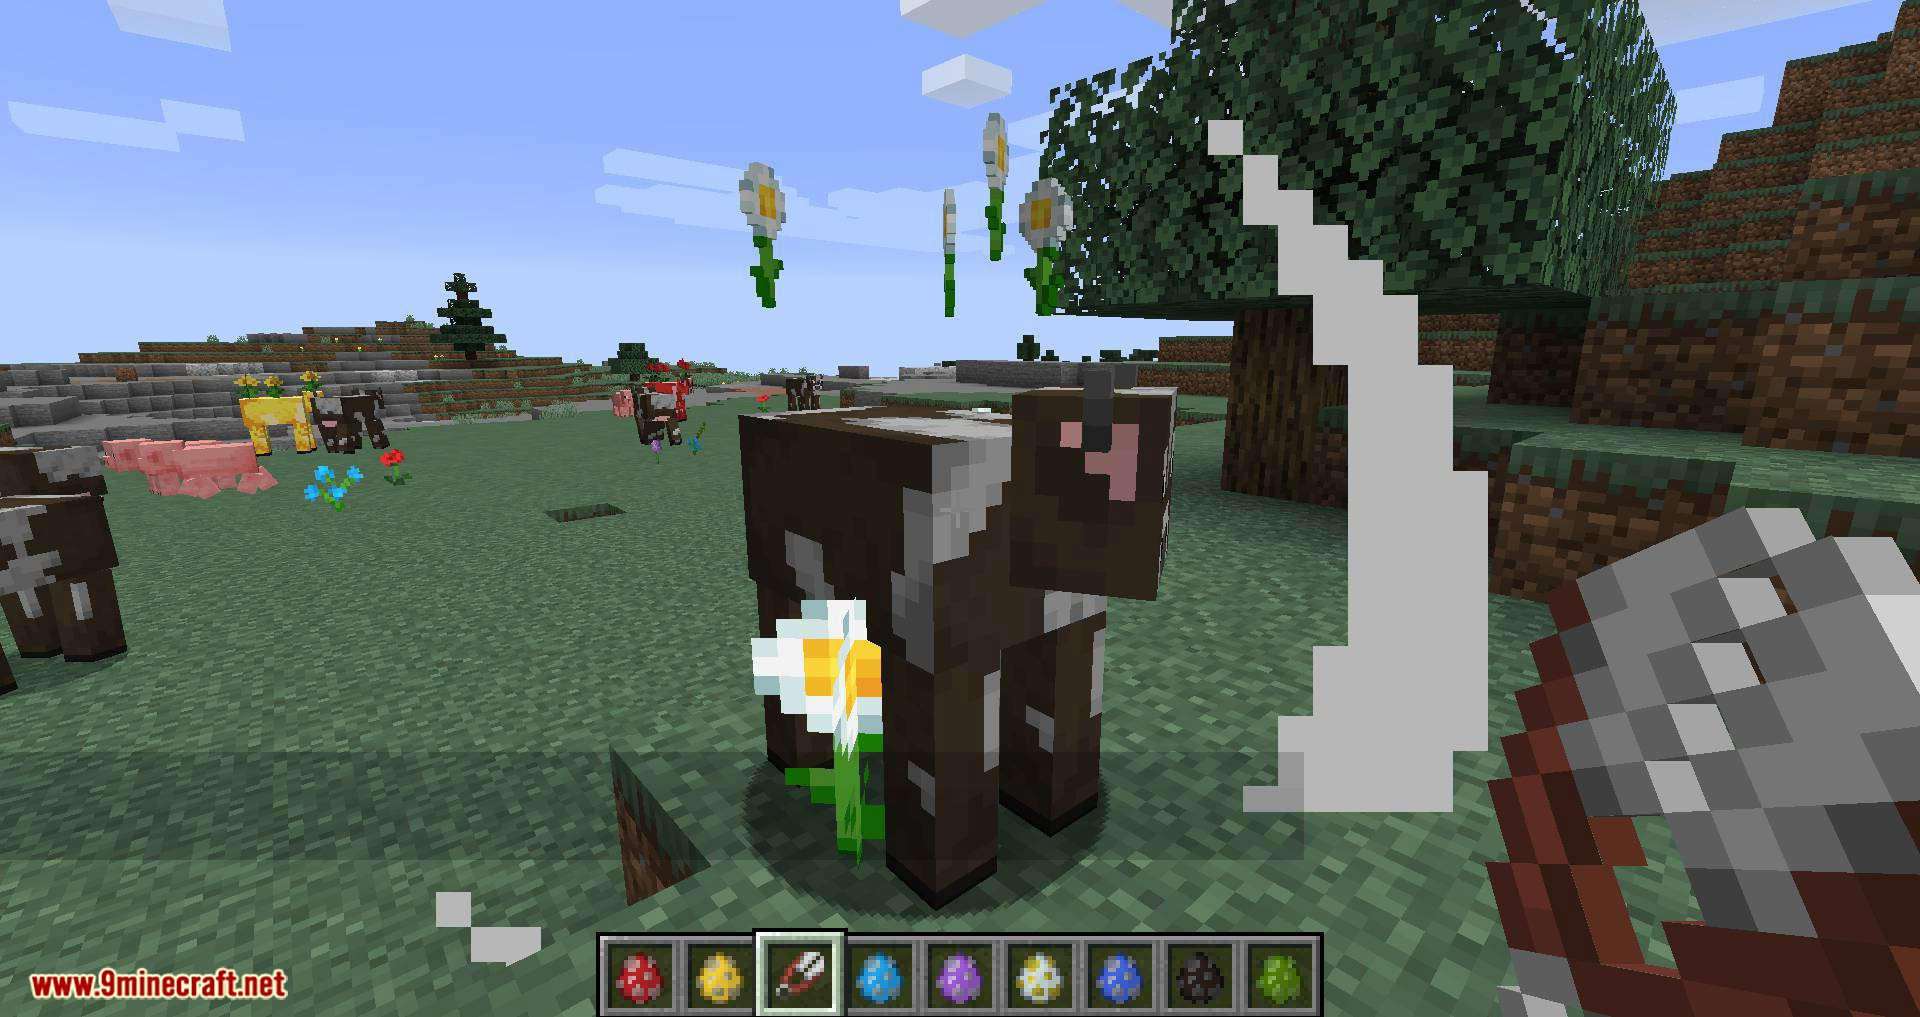 Mooblooms mod for minecraft 09